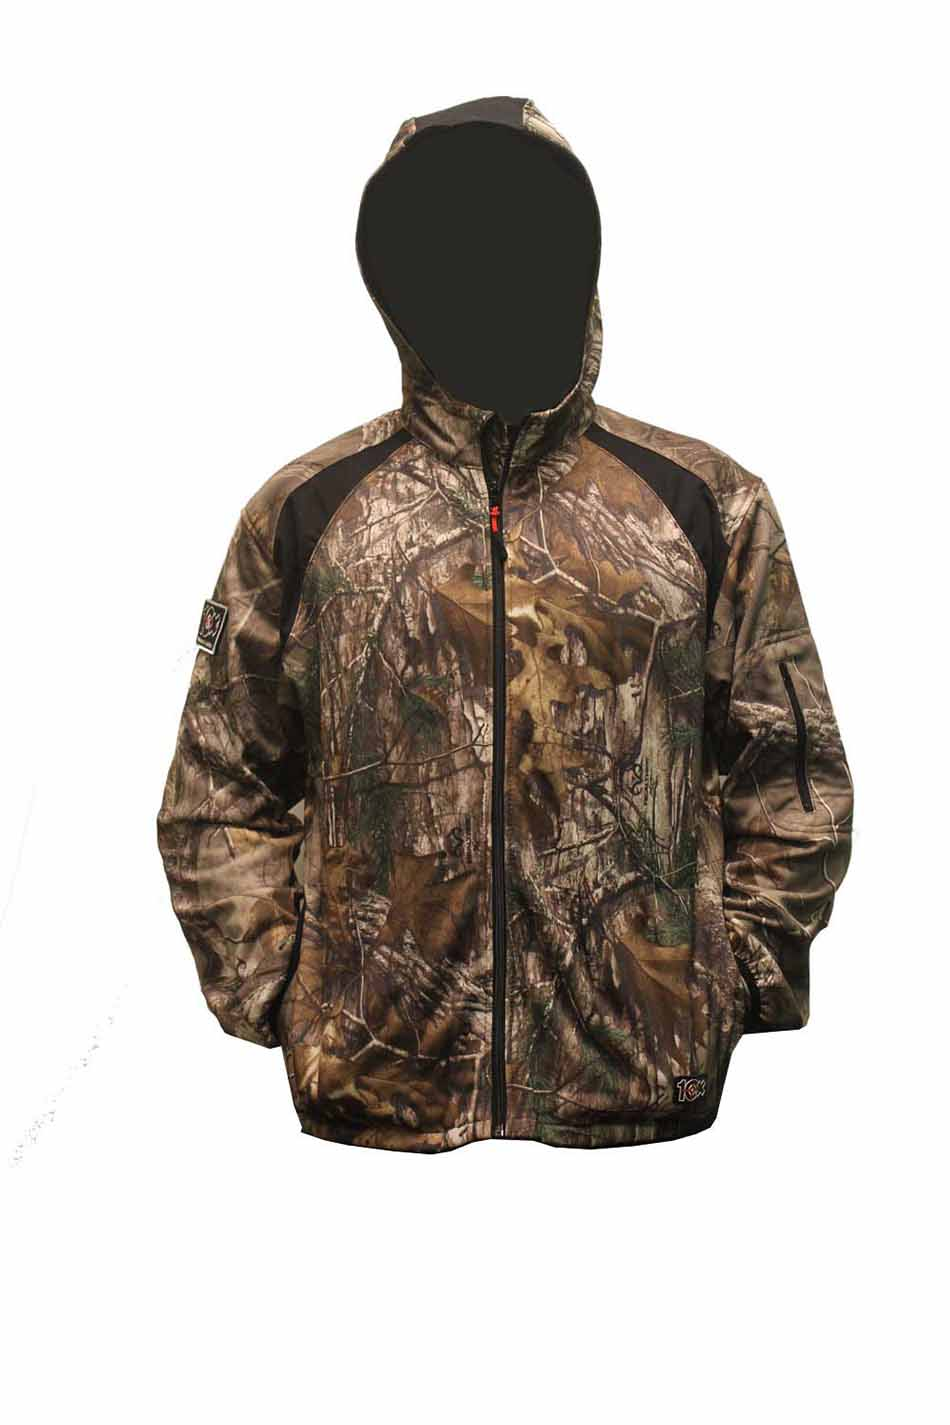 Walls 10X® Performance Fleece Full-Zip Jacket in Realtree AP Xtra_2.jpg